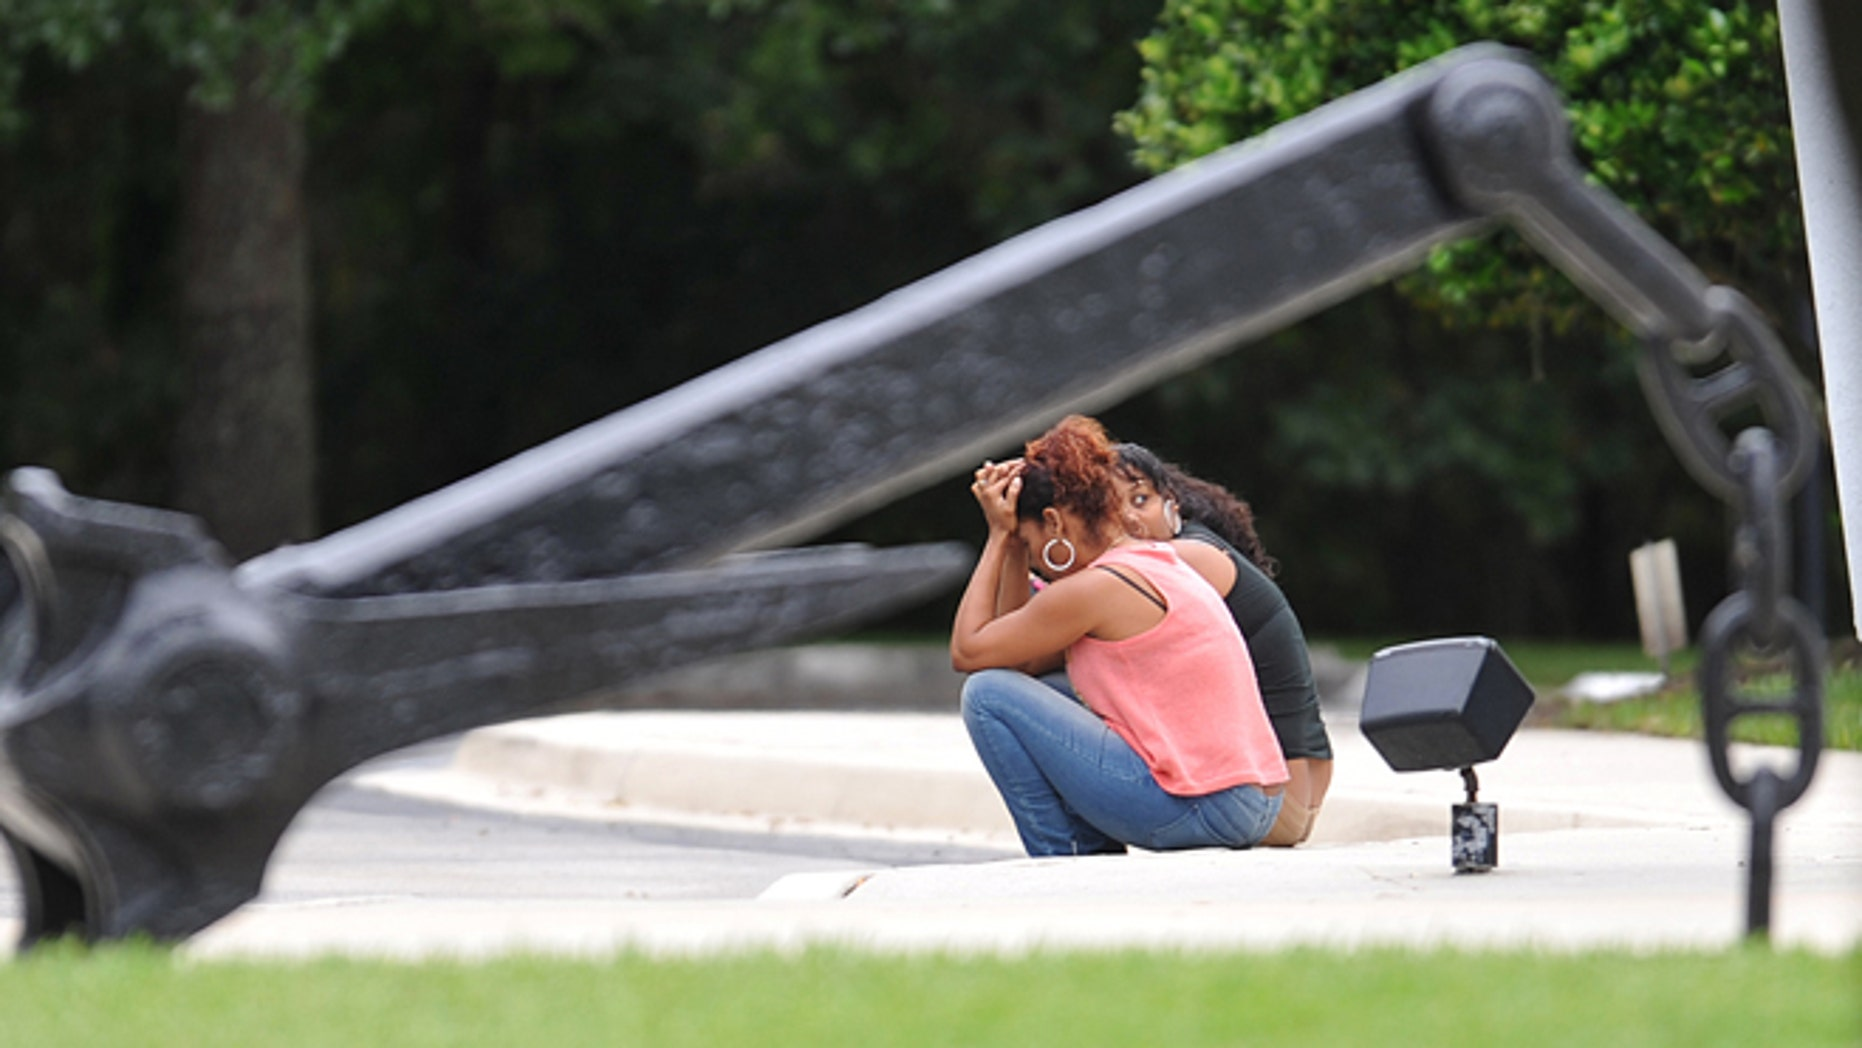 Families have gathered at the Seafarers Union Hall Sunday, Oct. 4, 2015, in Jacksonville, Fla., waiting for news on the crew of 33 aboard the missing cargo ship El Faro. (Bruce Lipsky/Florida Times-Union via AP)